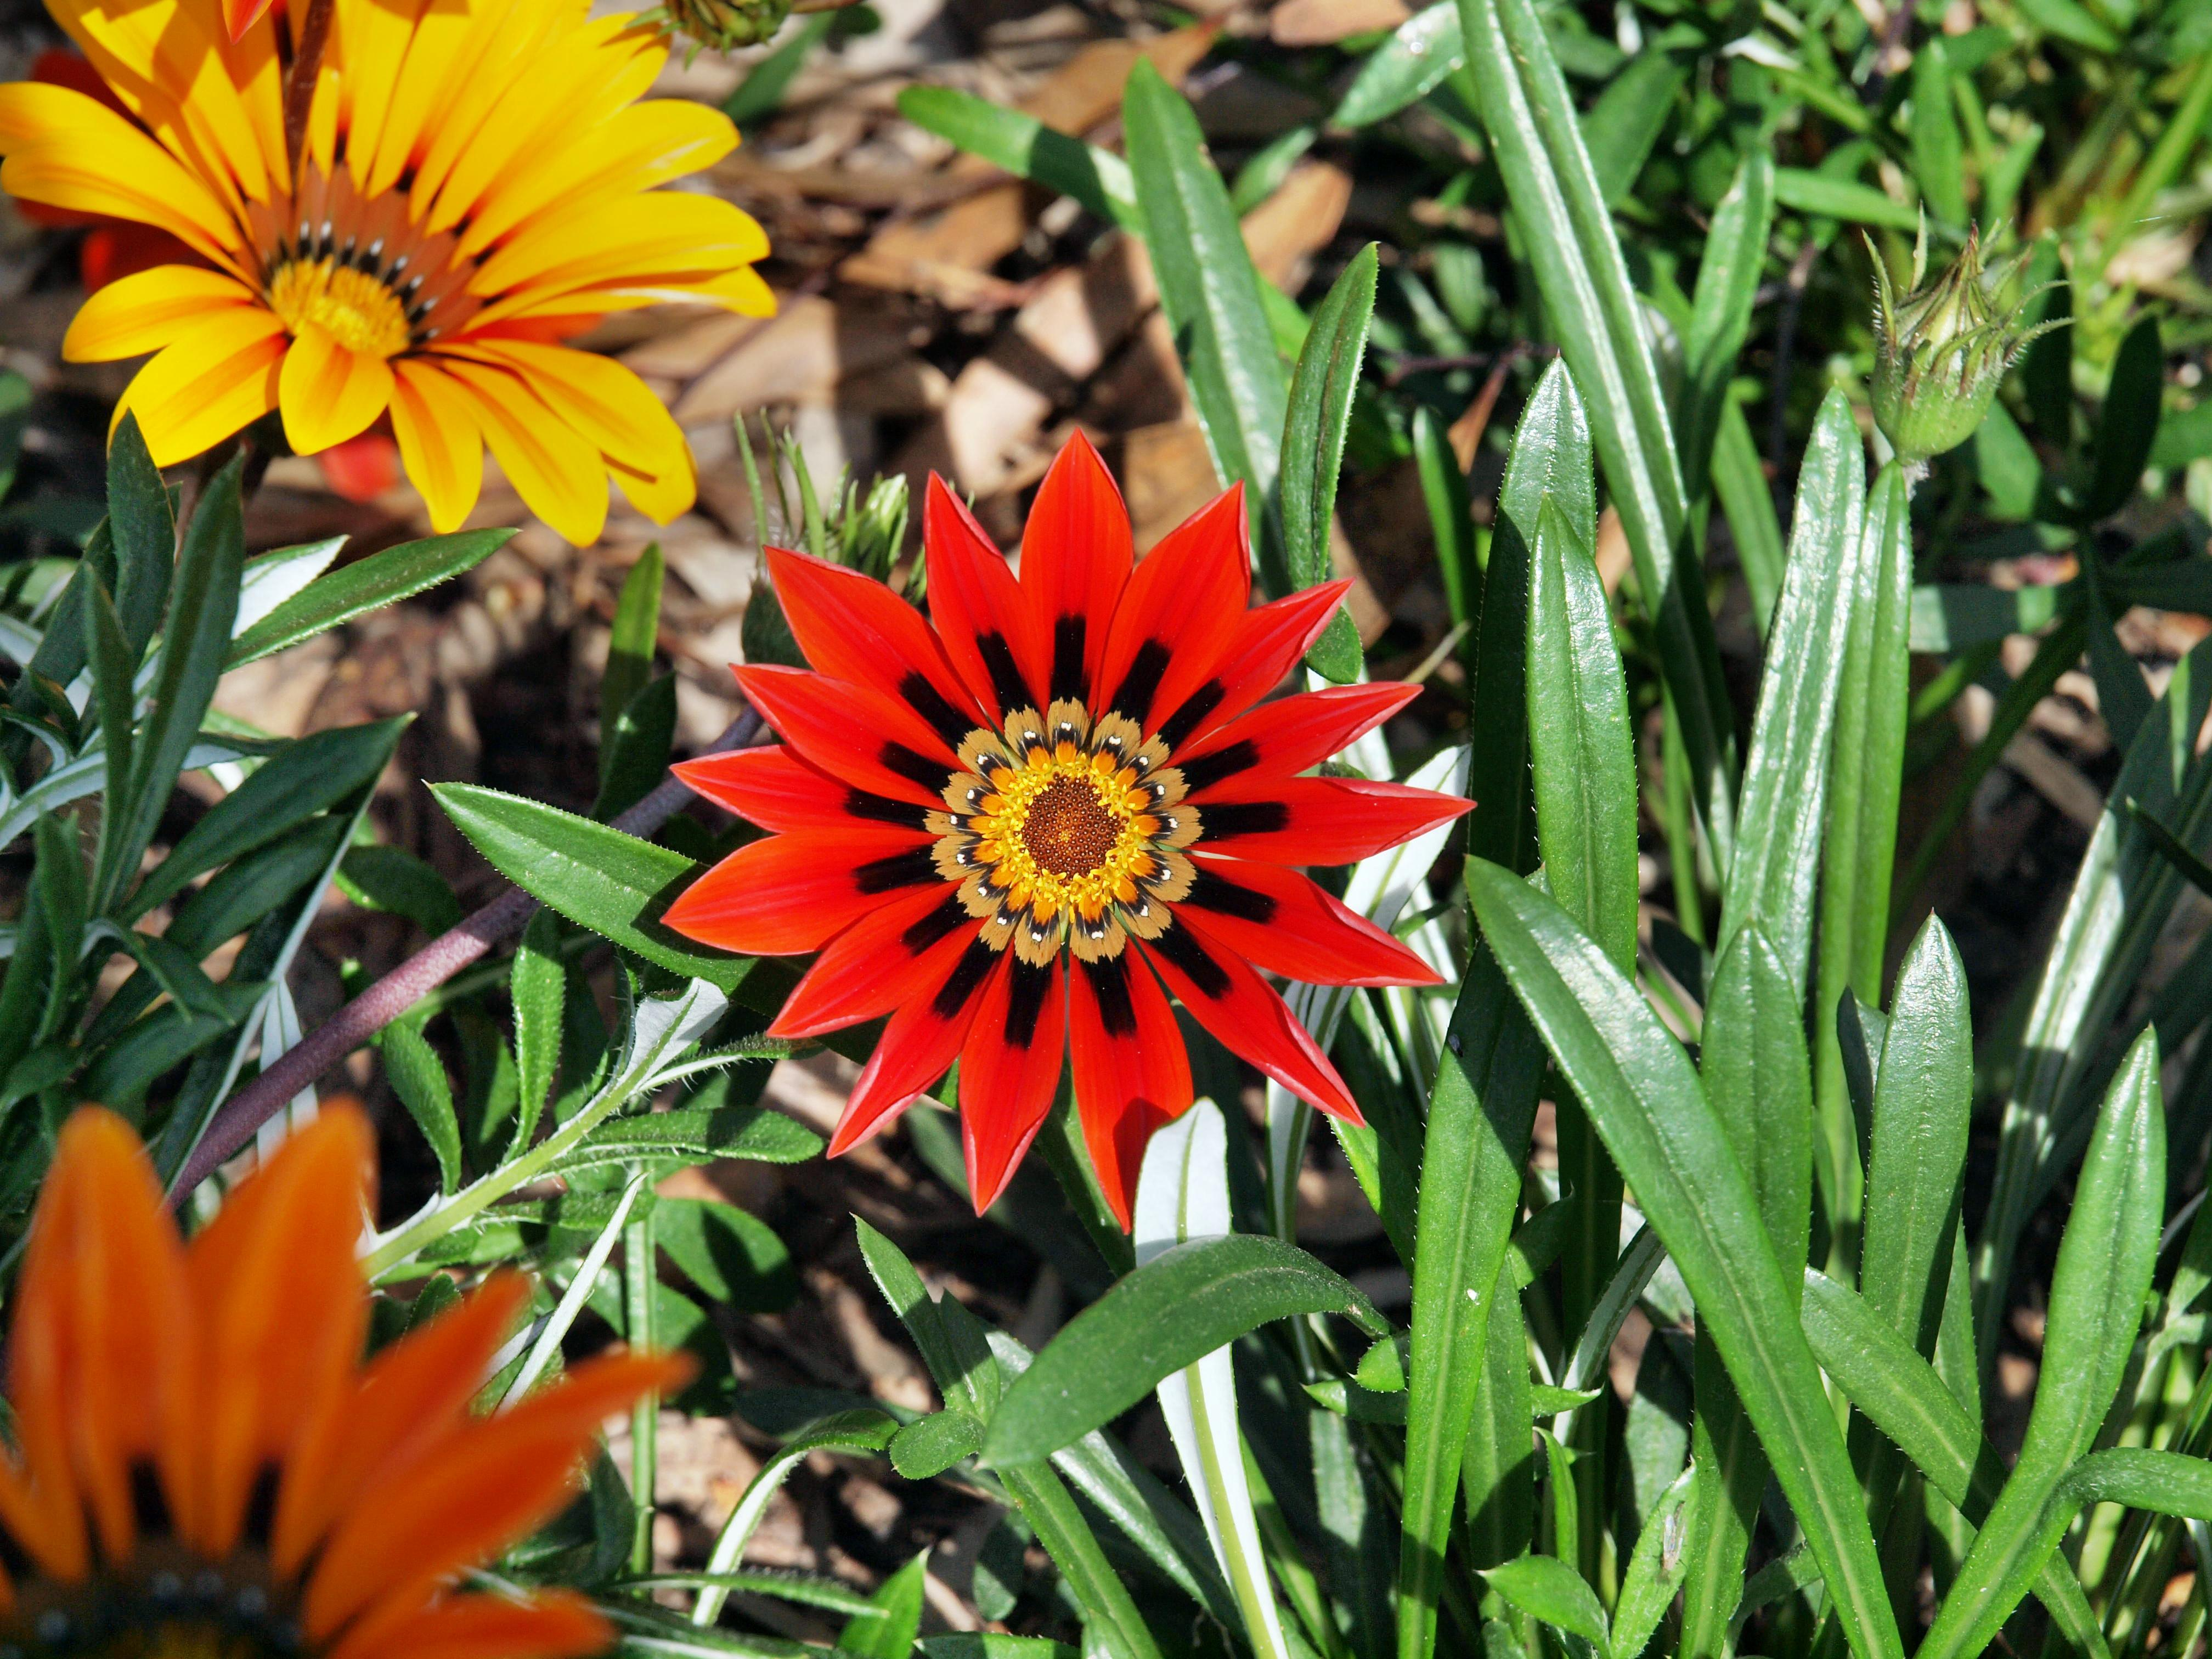 This should be Gazania-3.jpeg.  Is it missing?